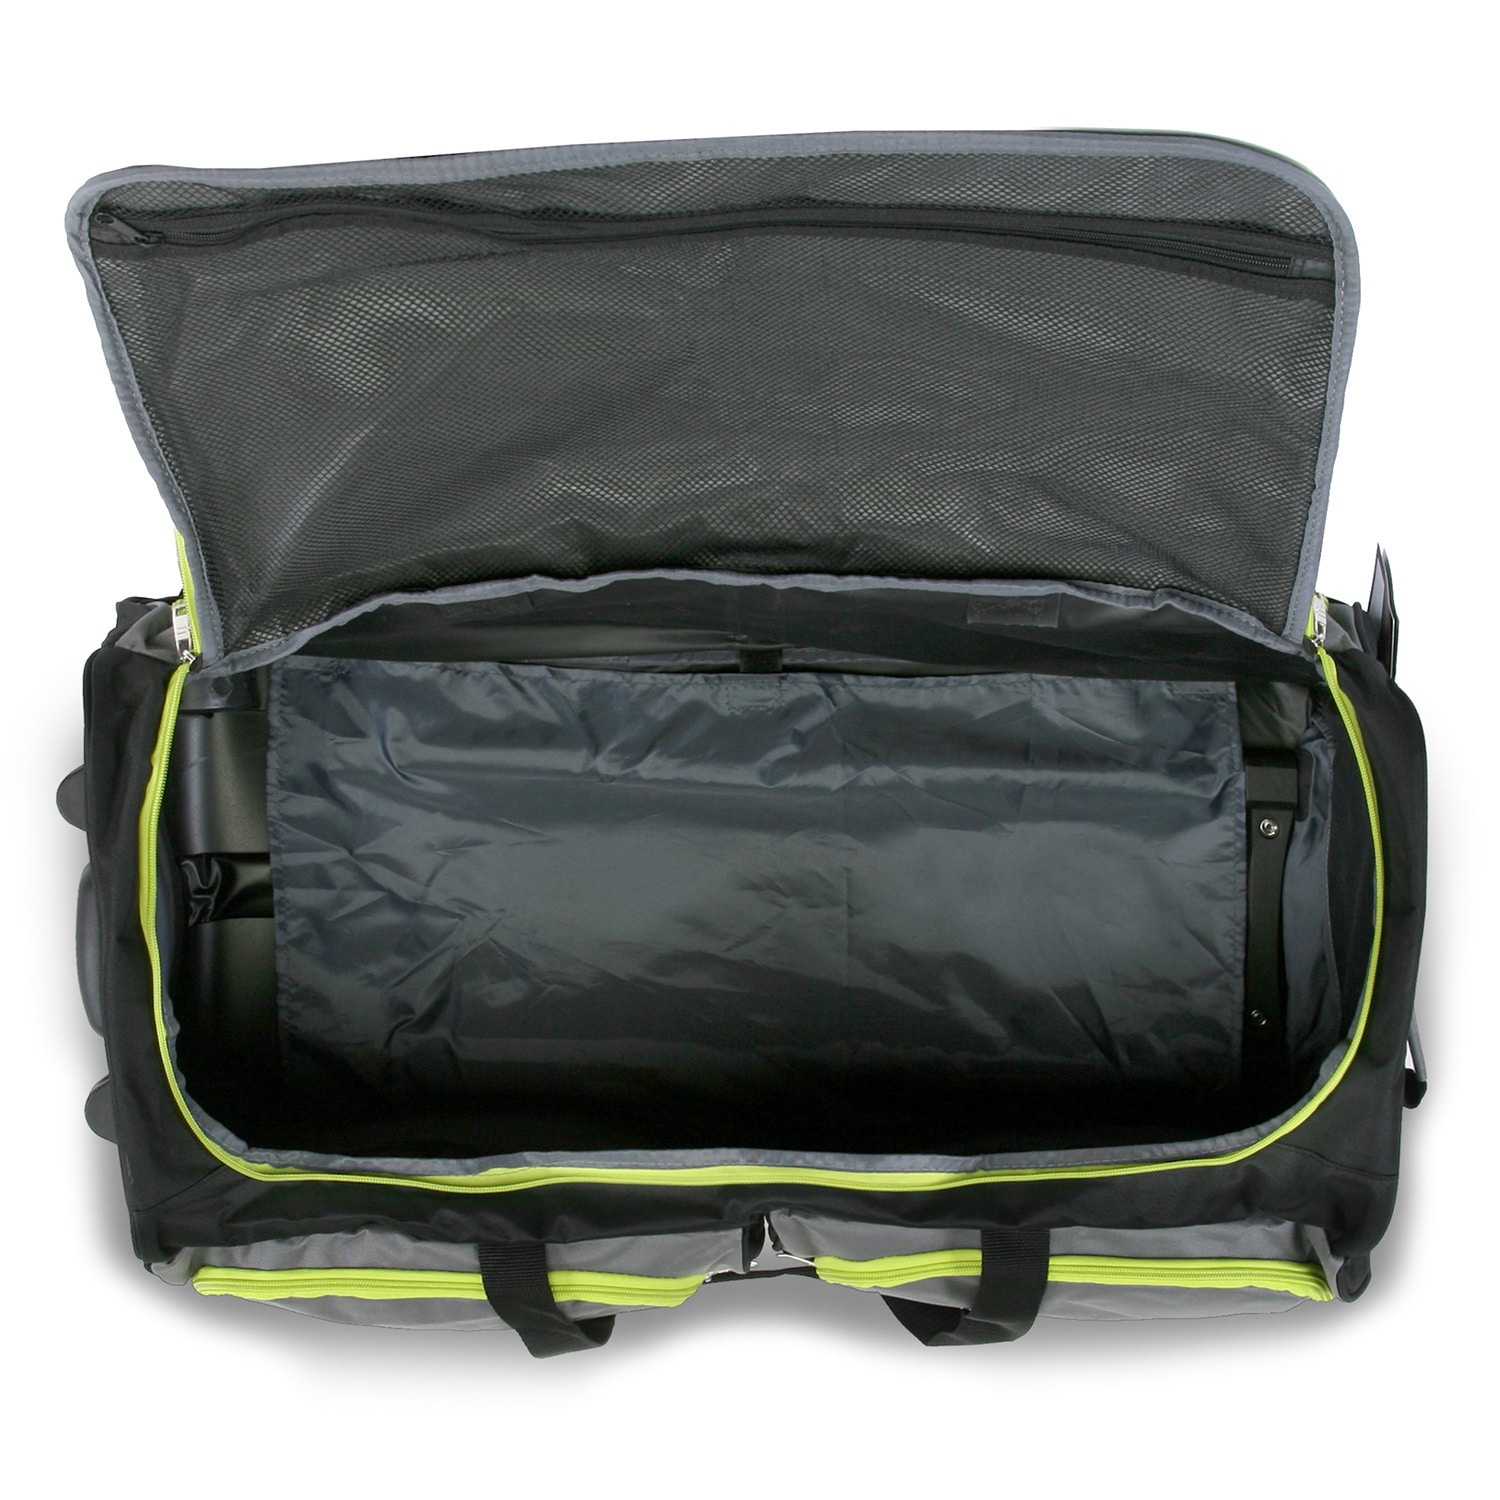 Fila 7 Pocket 30 Inch Large Rolling Duffel Bag Free Shipping Today 12298278